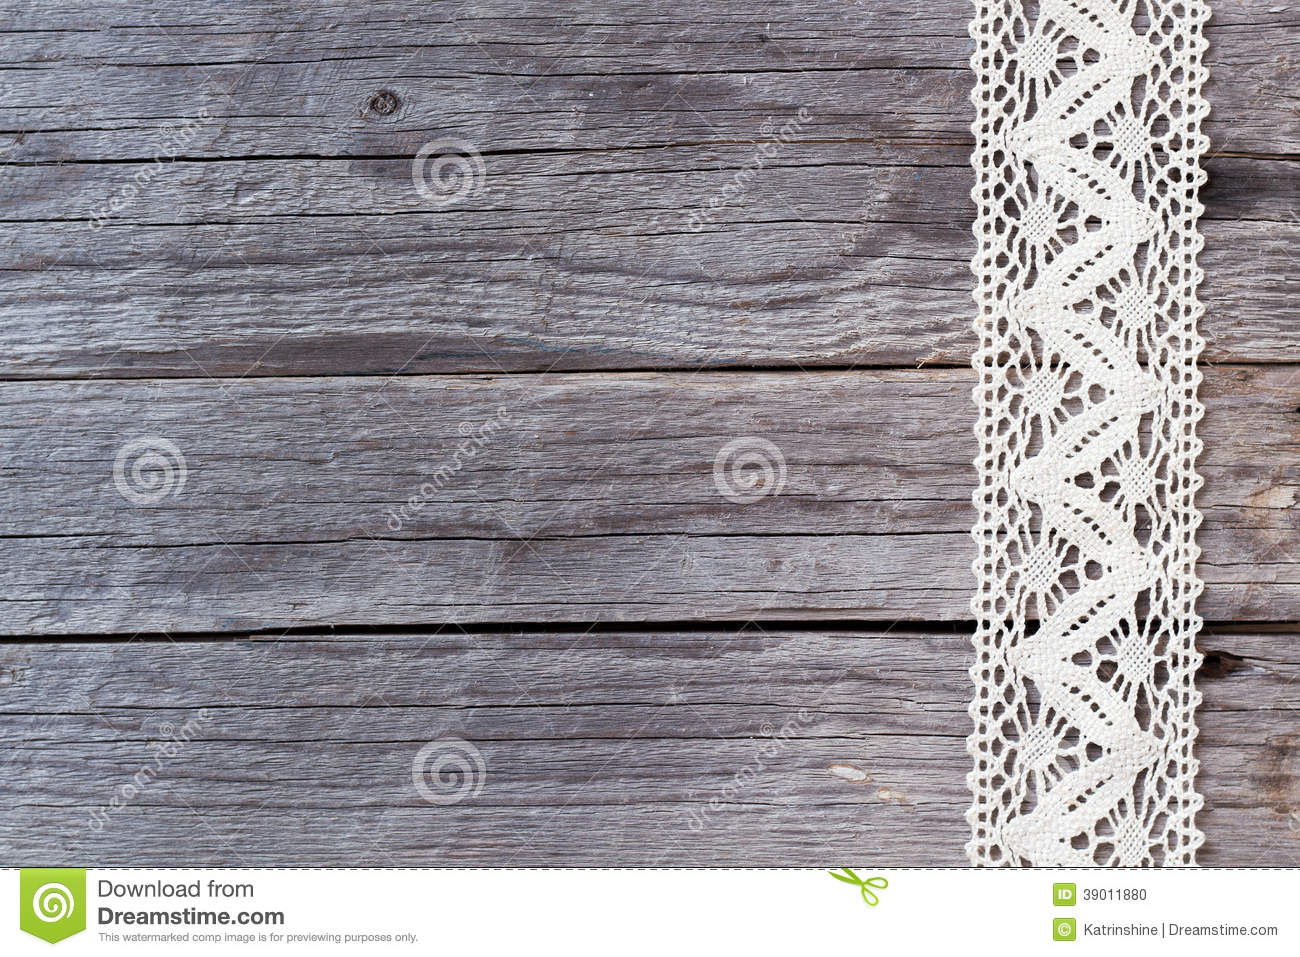 3d Animation Animals Wallpaper Lace On Old Wood Background Stock Photo Image 39011880